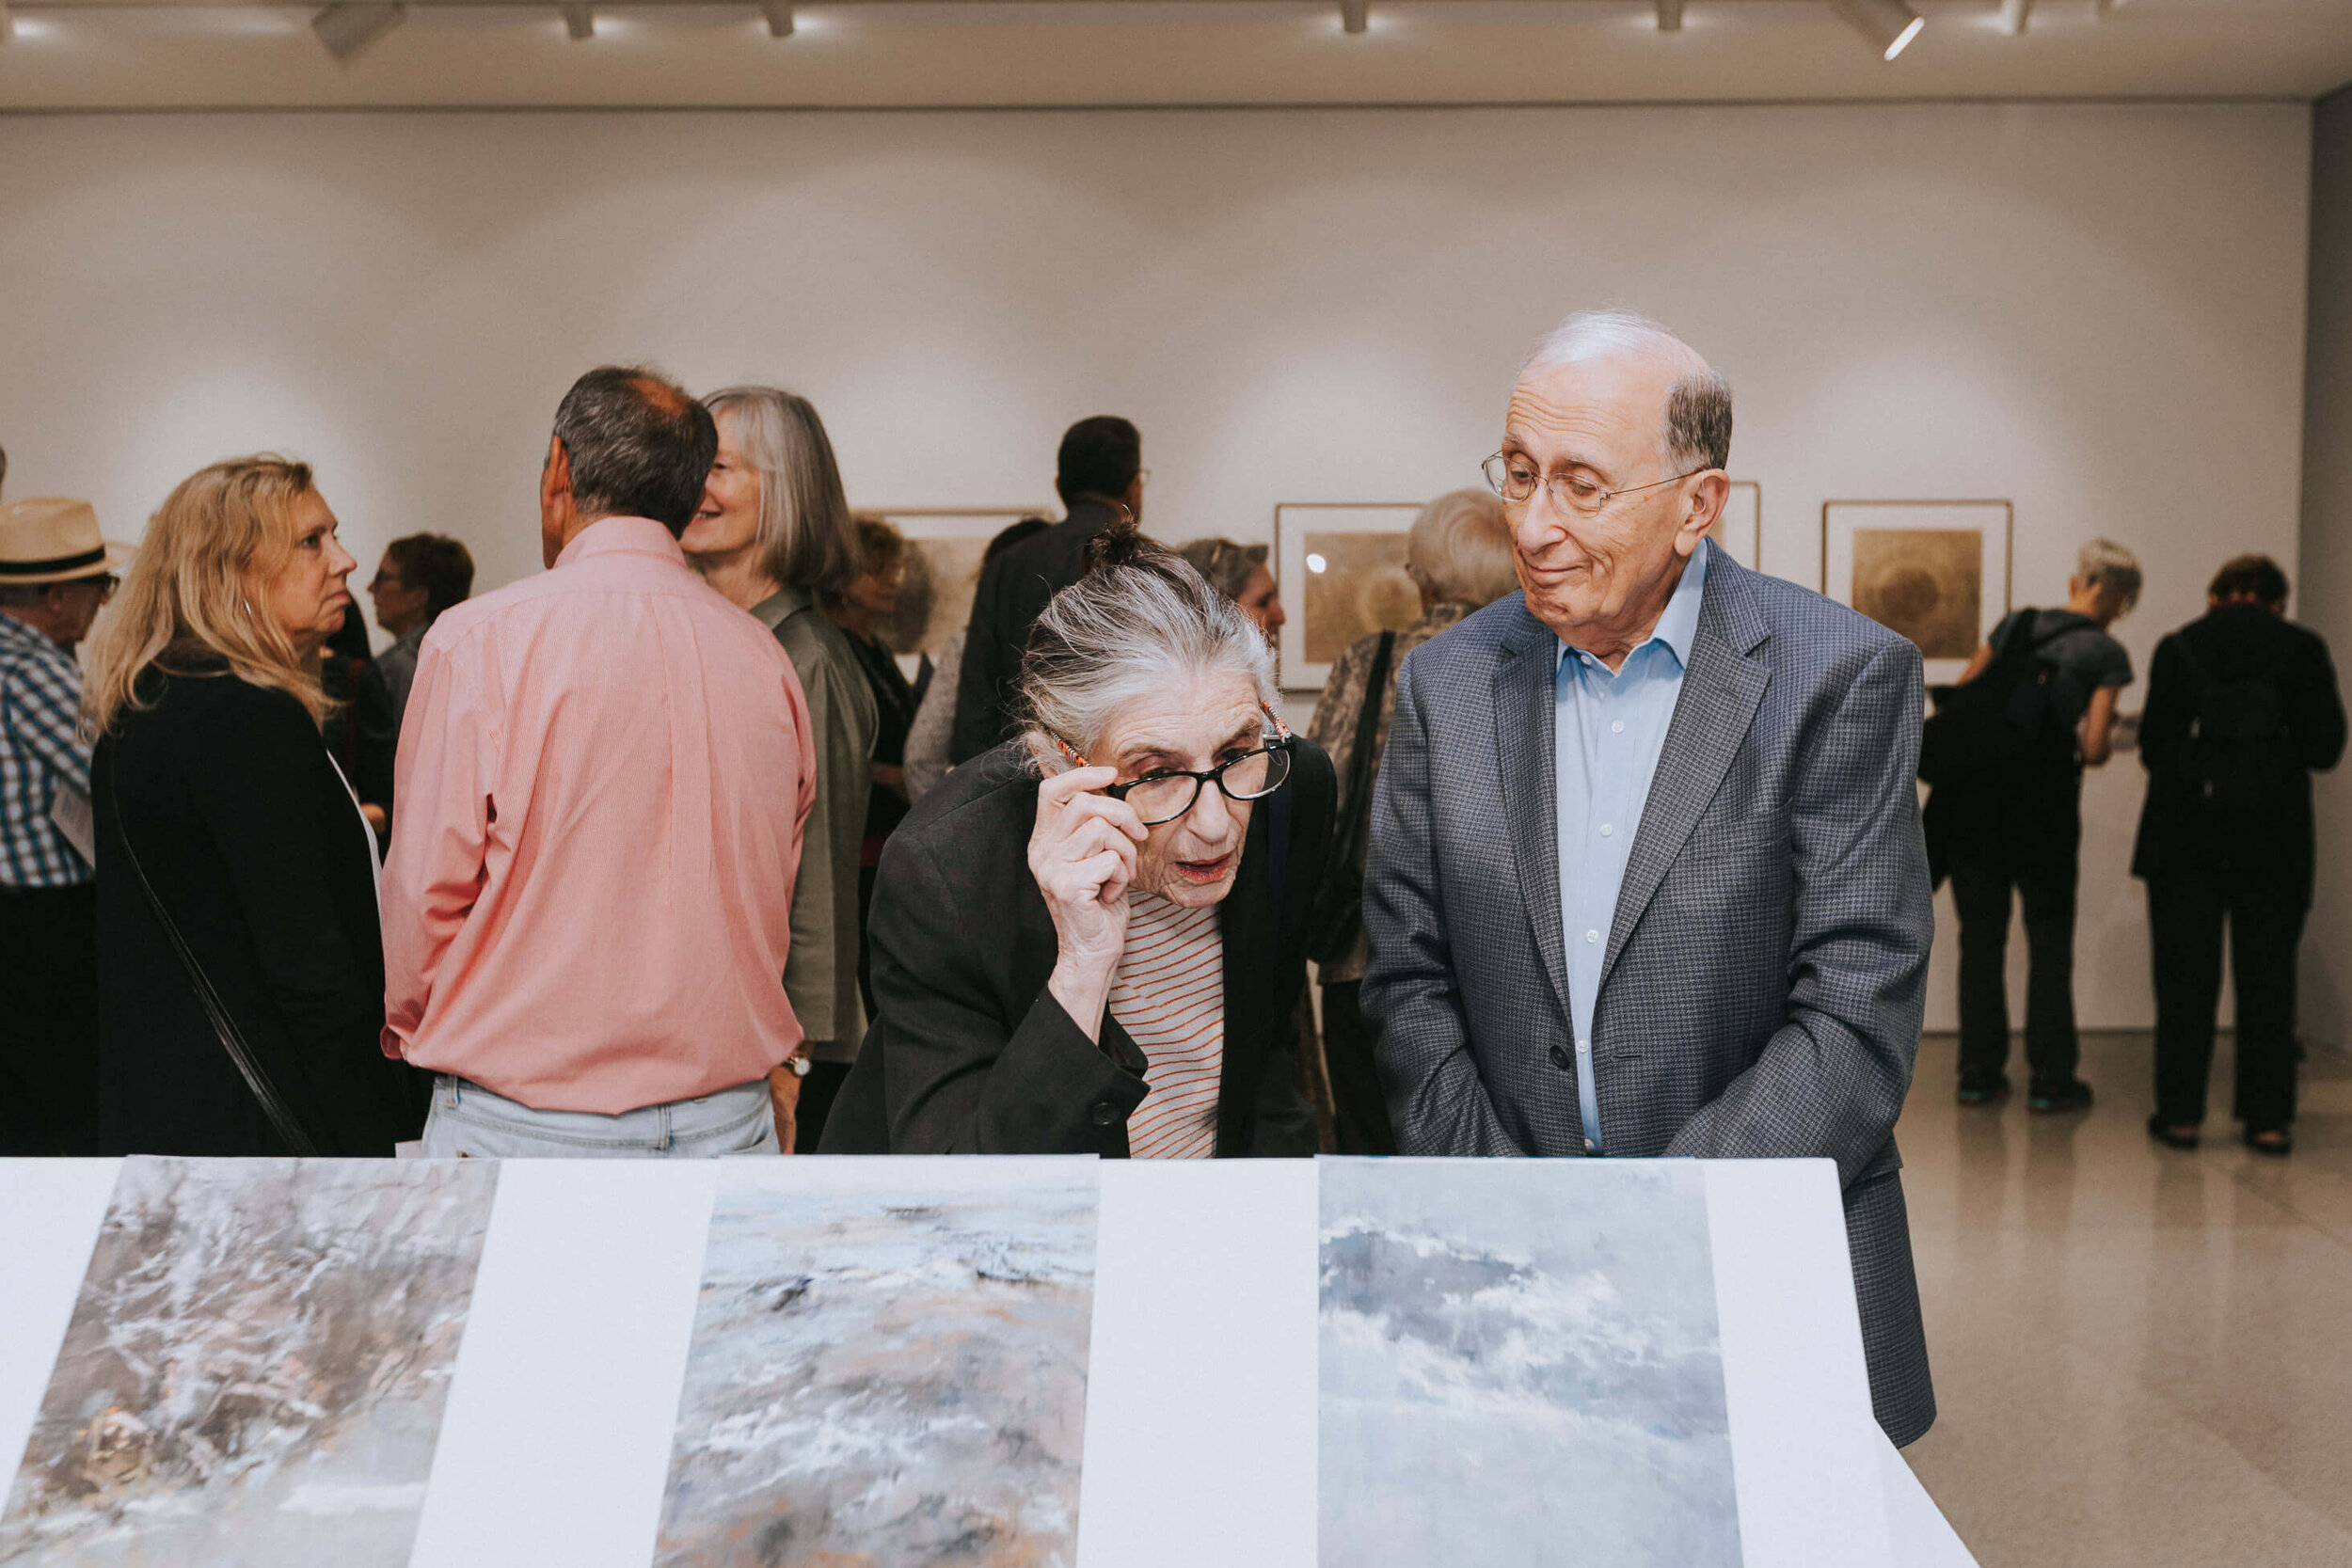 Man and woman examining art at Chicago gallery opening